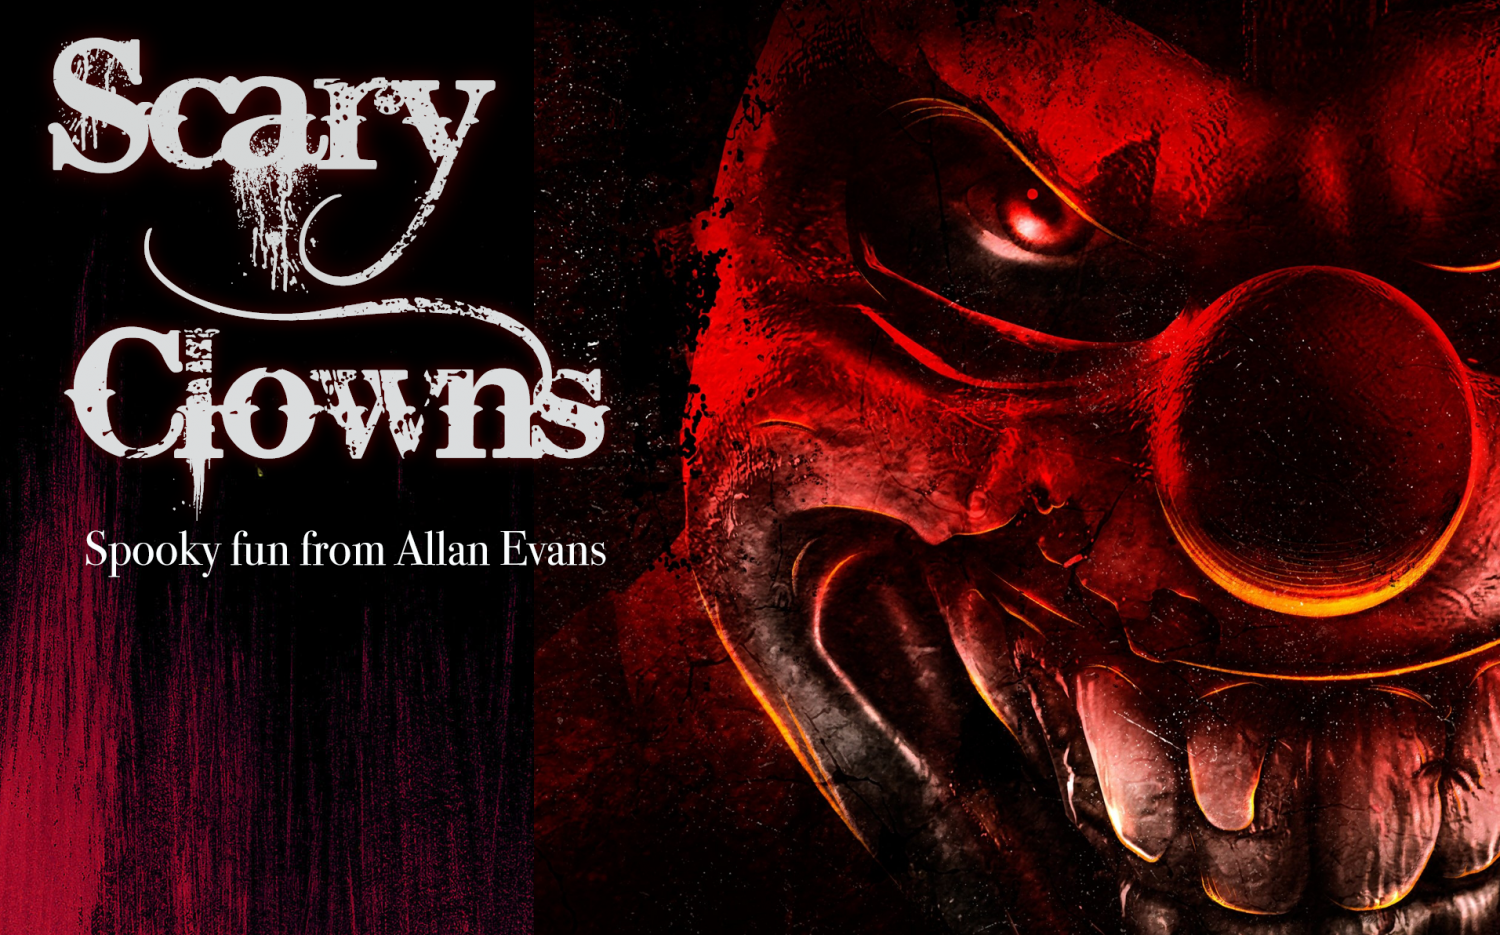 Spooky fun written by Allan Evans